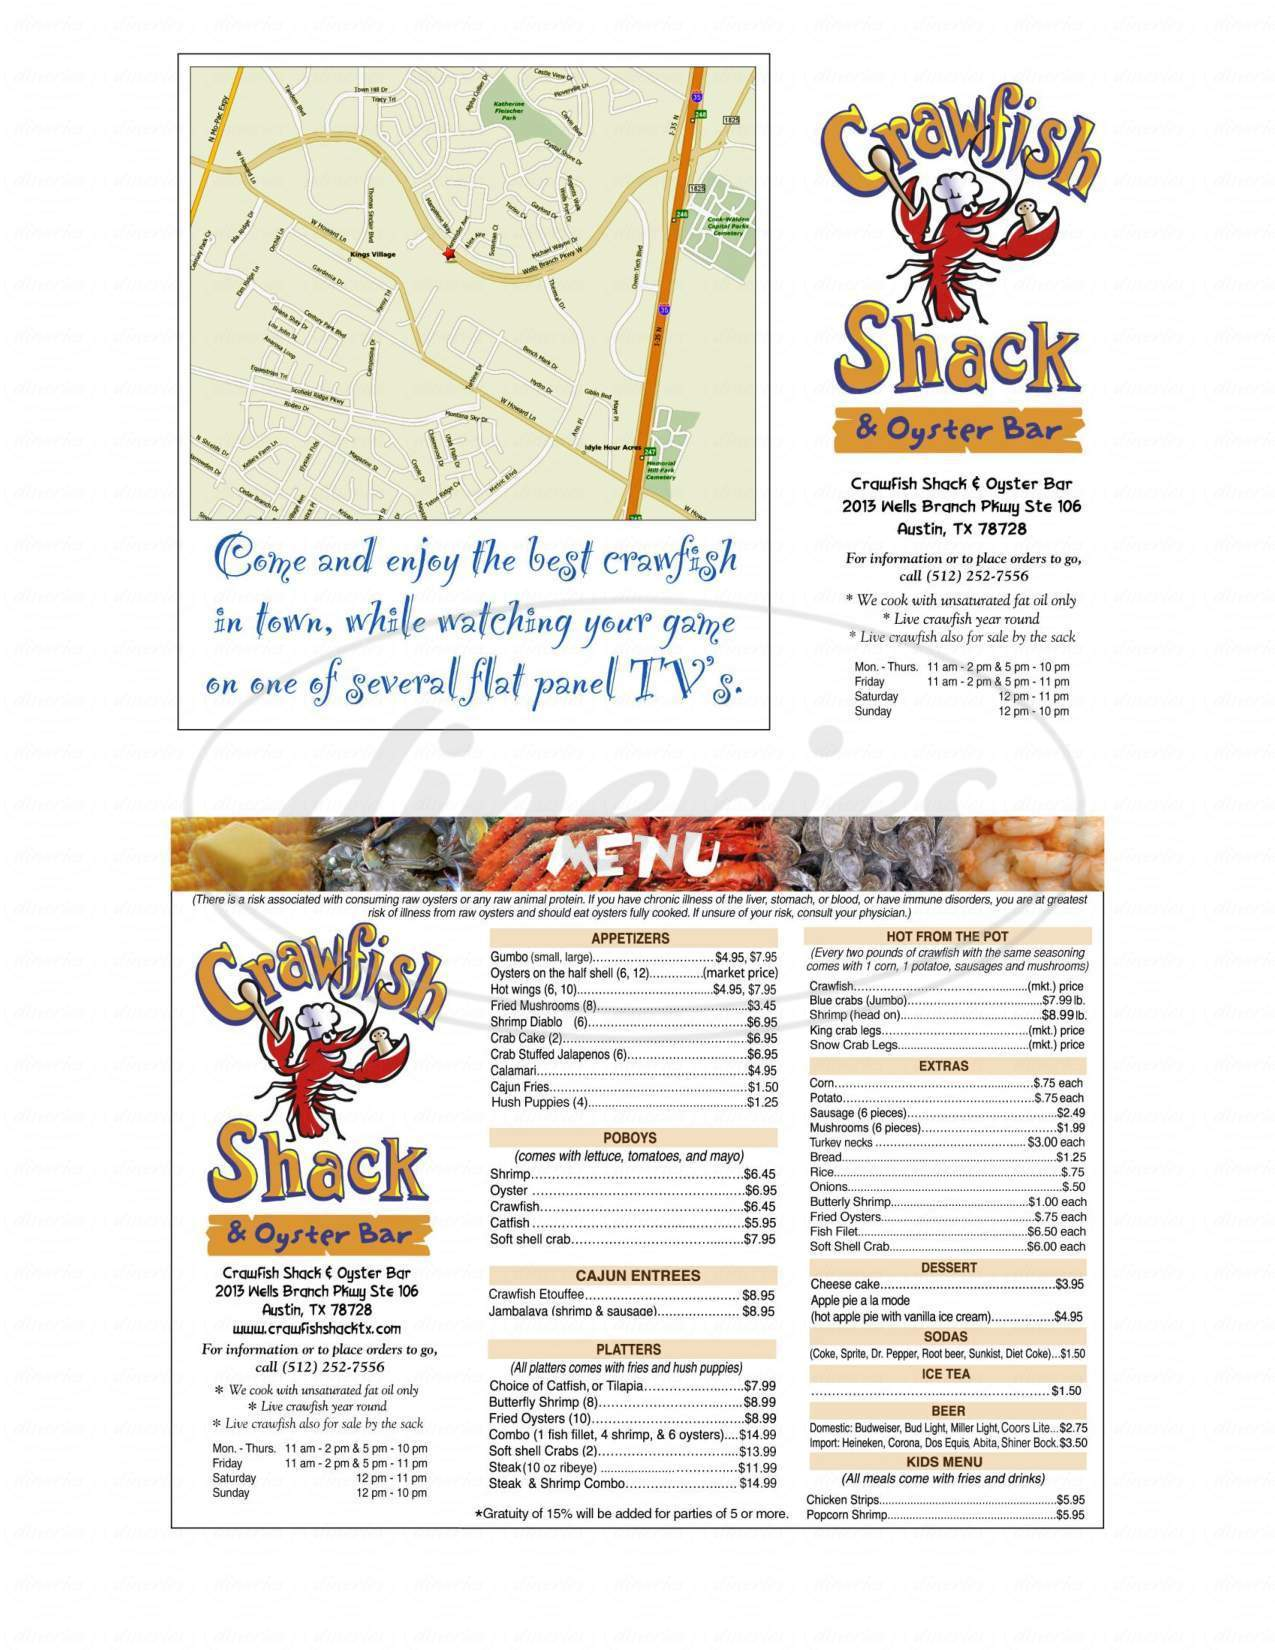 menu for Crawfish Shack & Oyster Bar